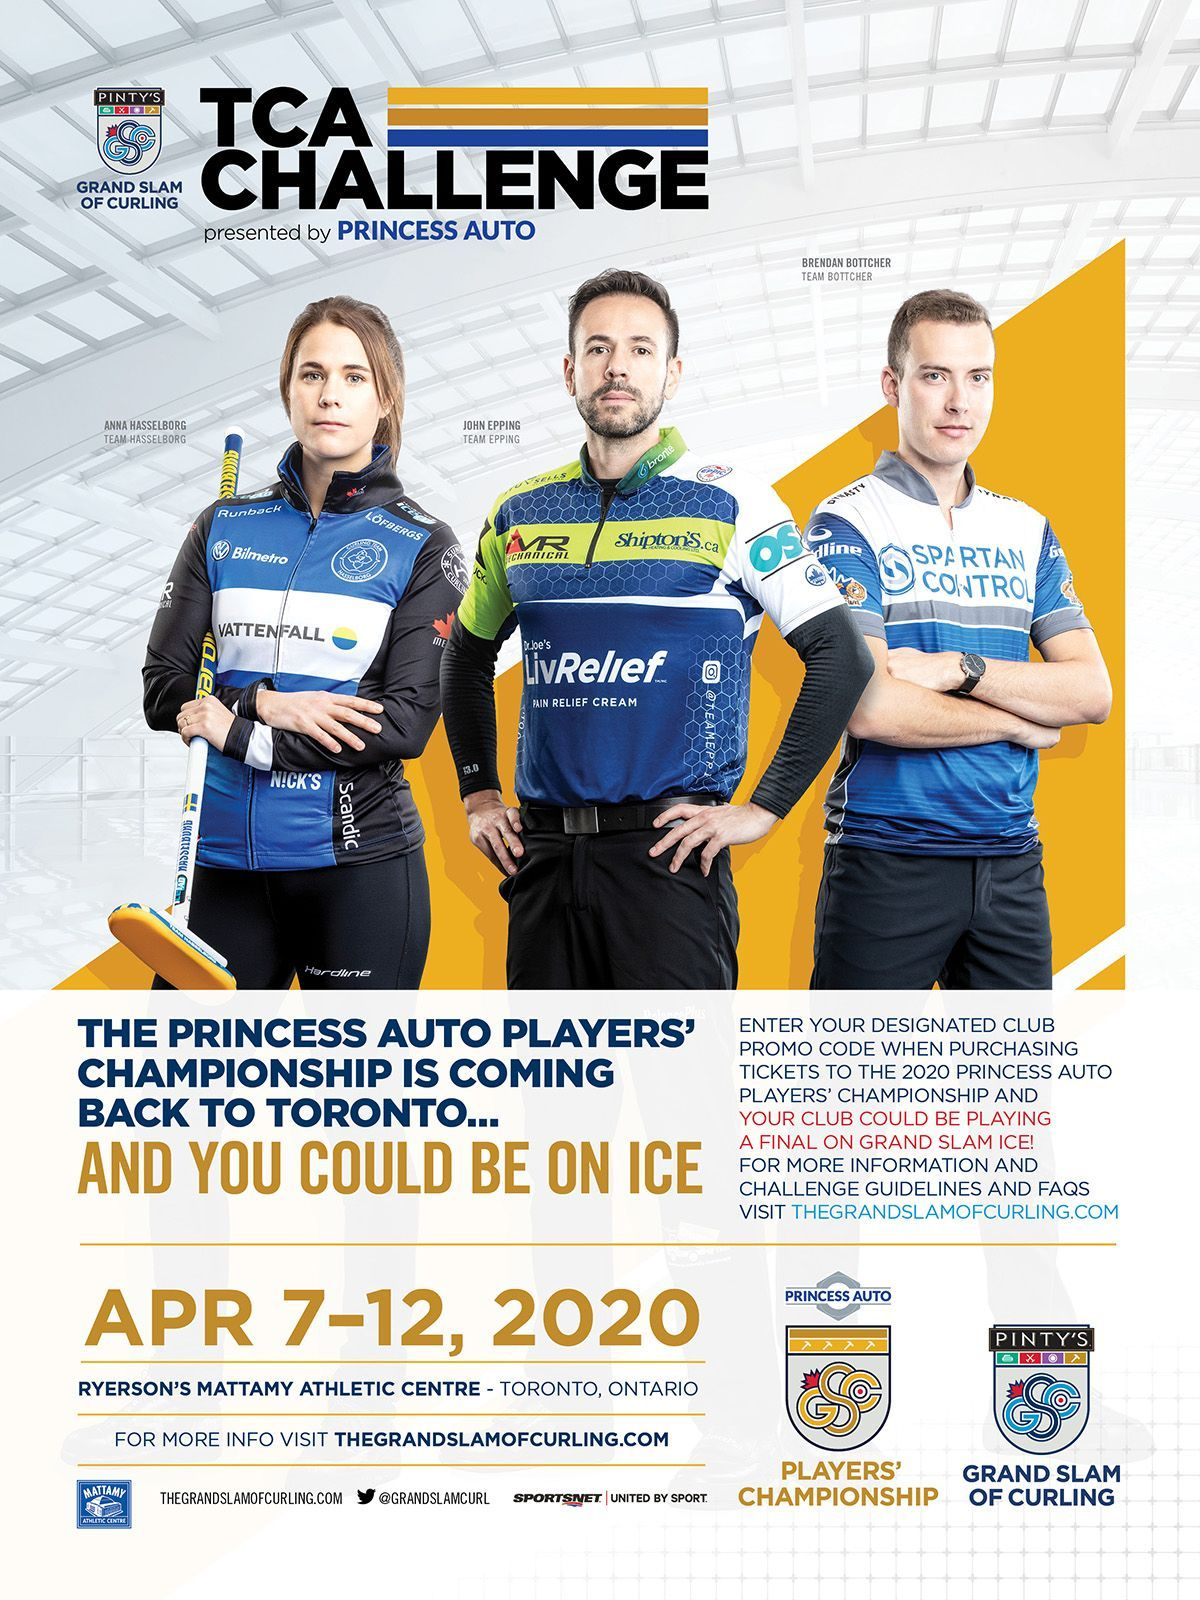 1578484383981 Grand Slam of Curling Players Championship 2020 TCA Challenge Poster 18x24 v2